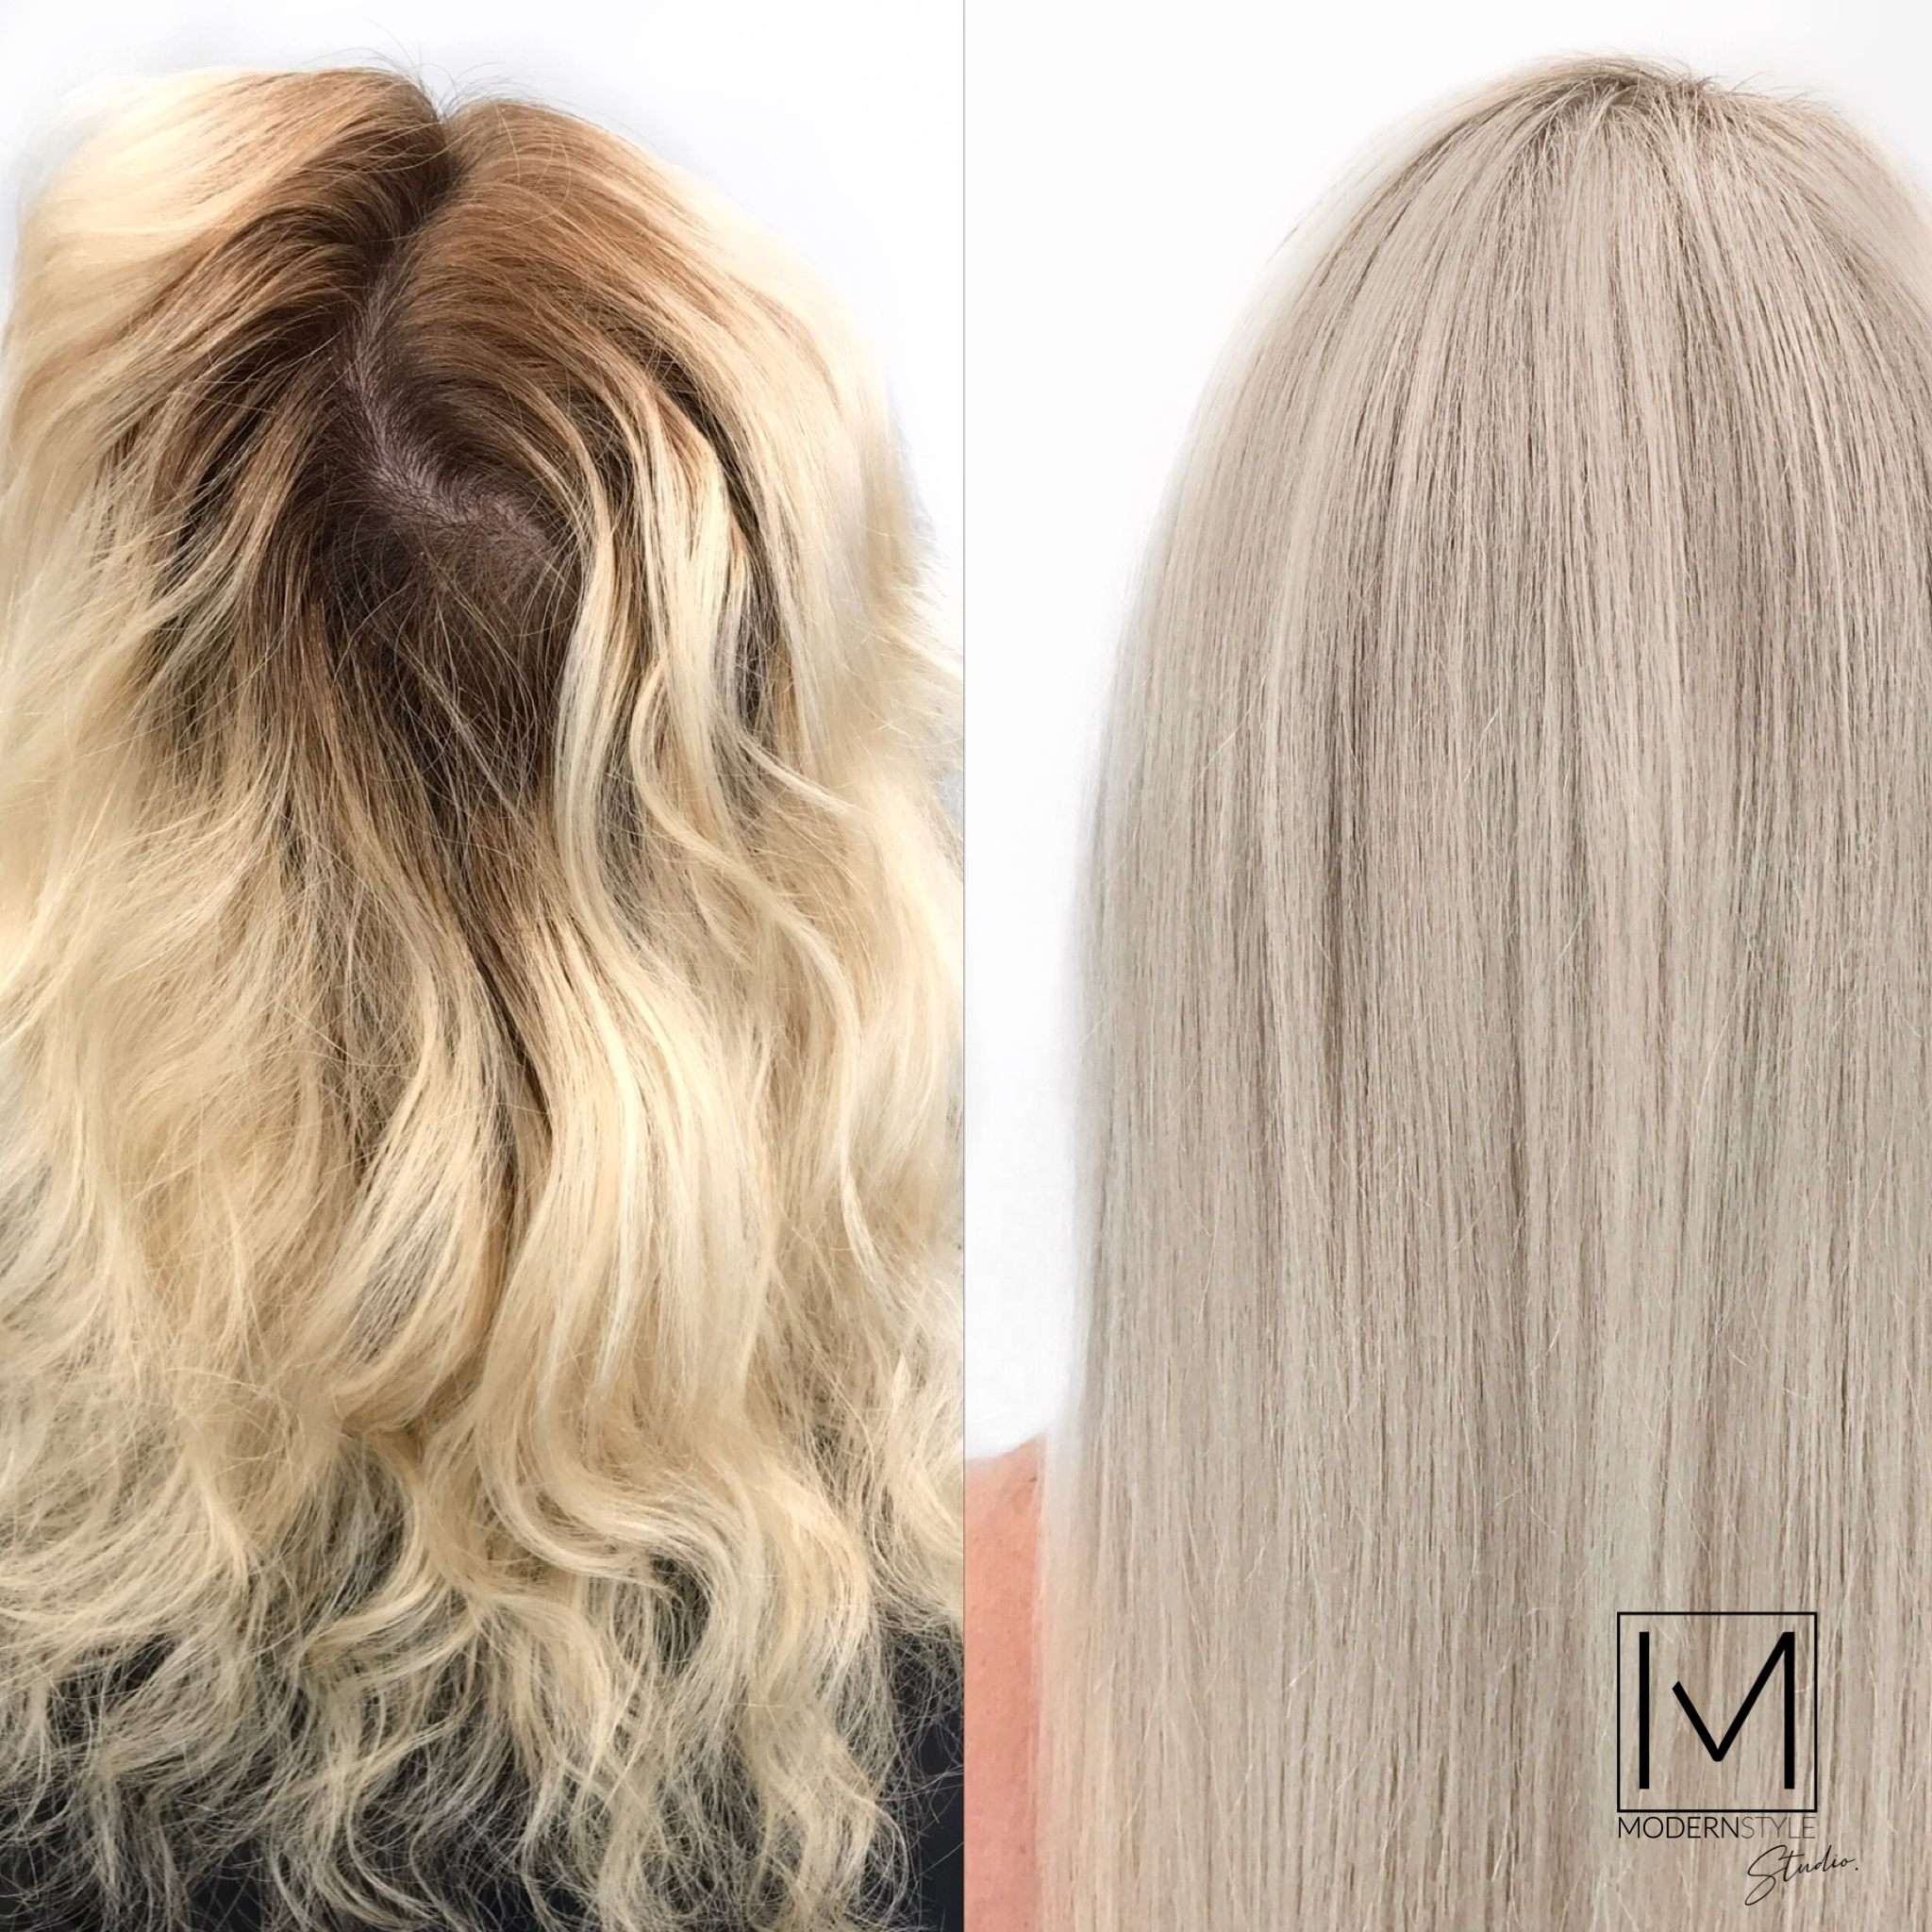 Color correction specialist Charlotte, best colorist in Charlotte NC, top salons in Charlotte NC, Olaplex salon Charlotte, blonde specialist in Charlotte, Goldwell salon Charlotte, best hair stylist in Charlotte, top hair salons near me, hair salons near me, Waverly Charlotte, Rea Farms